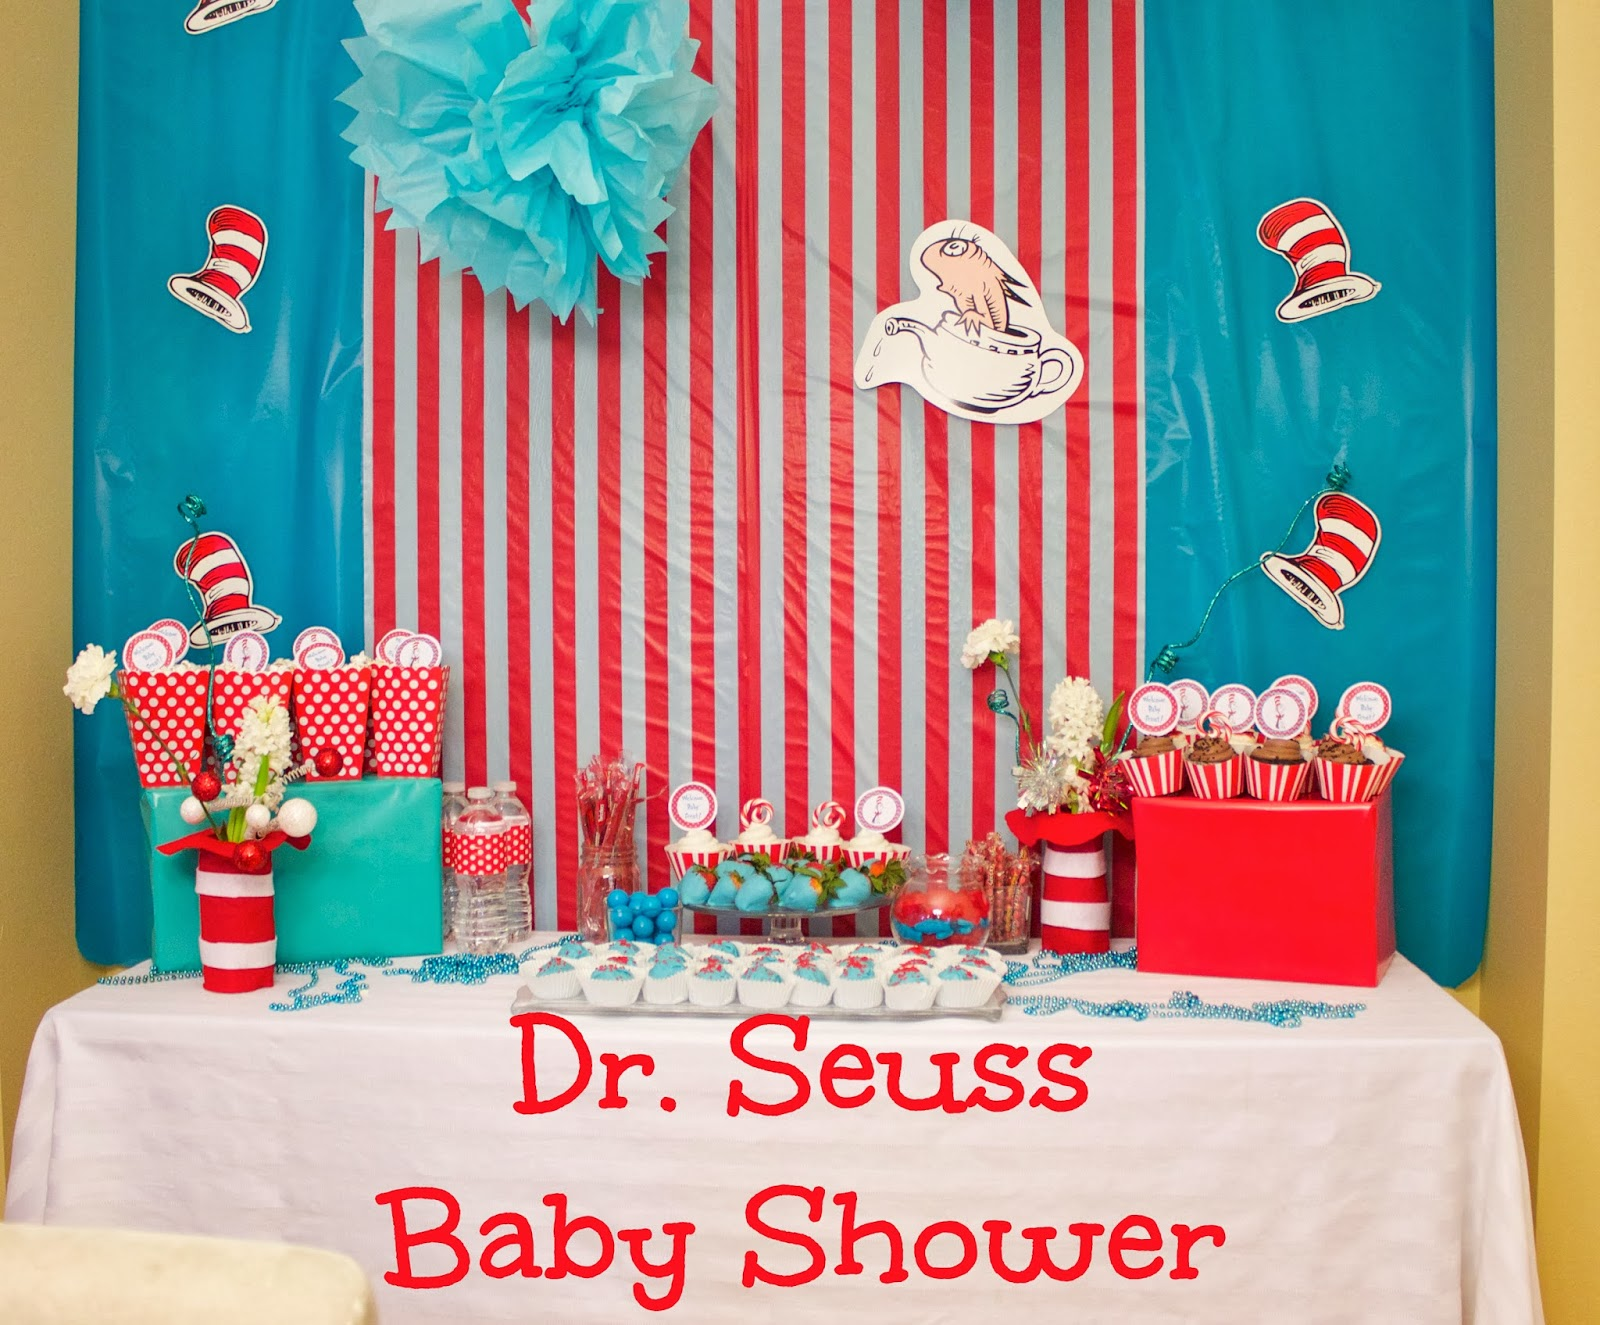 Baby Shower Ideas For Decorations Dr Seuss Theme - Elitflat